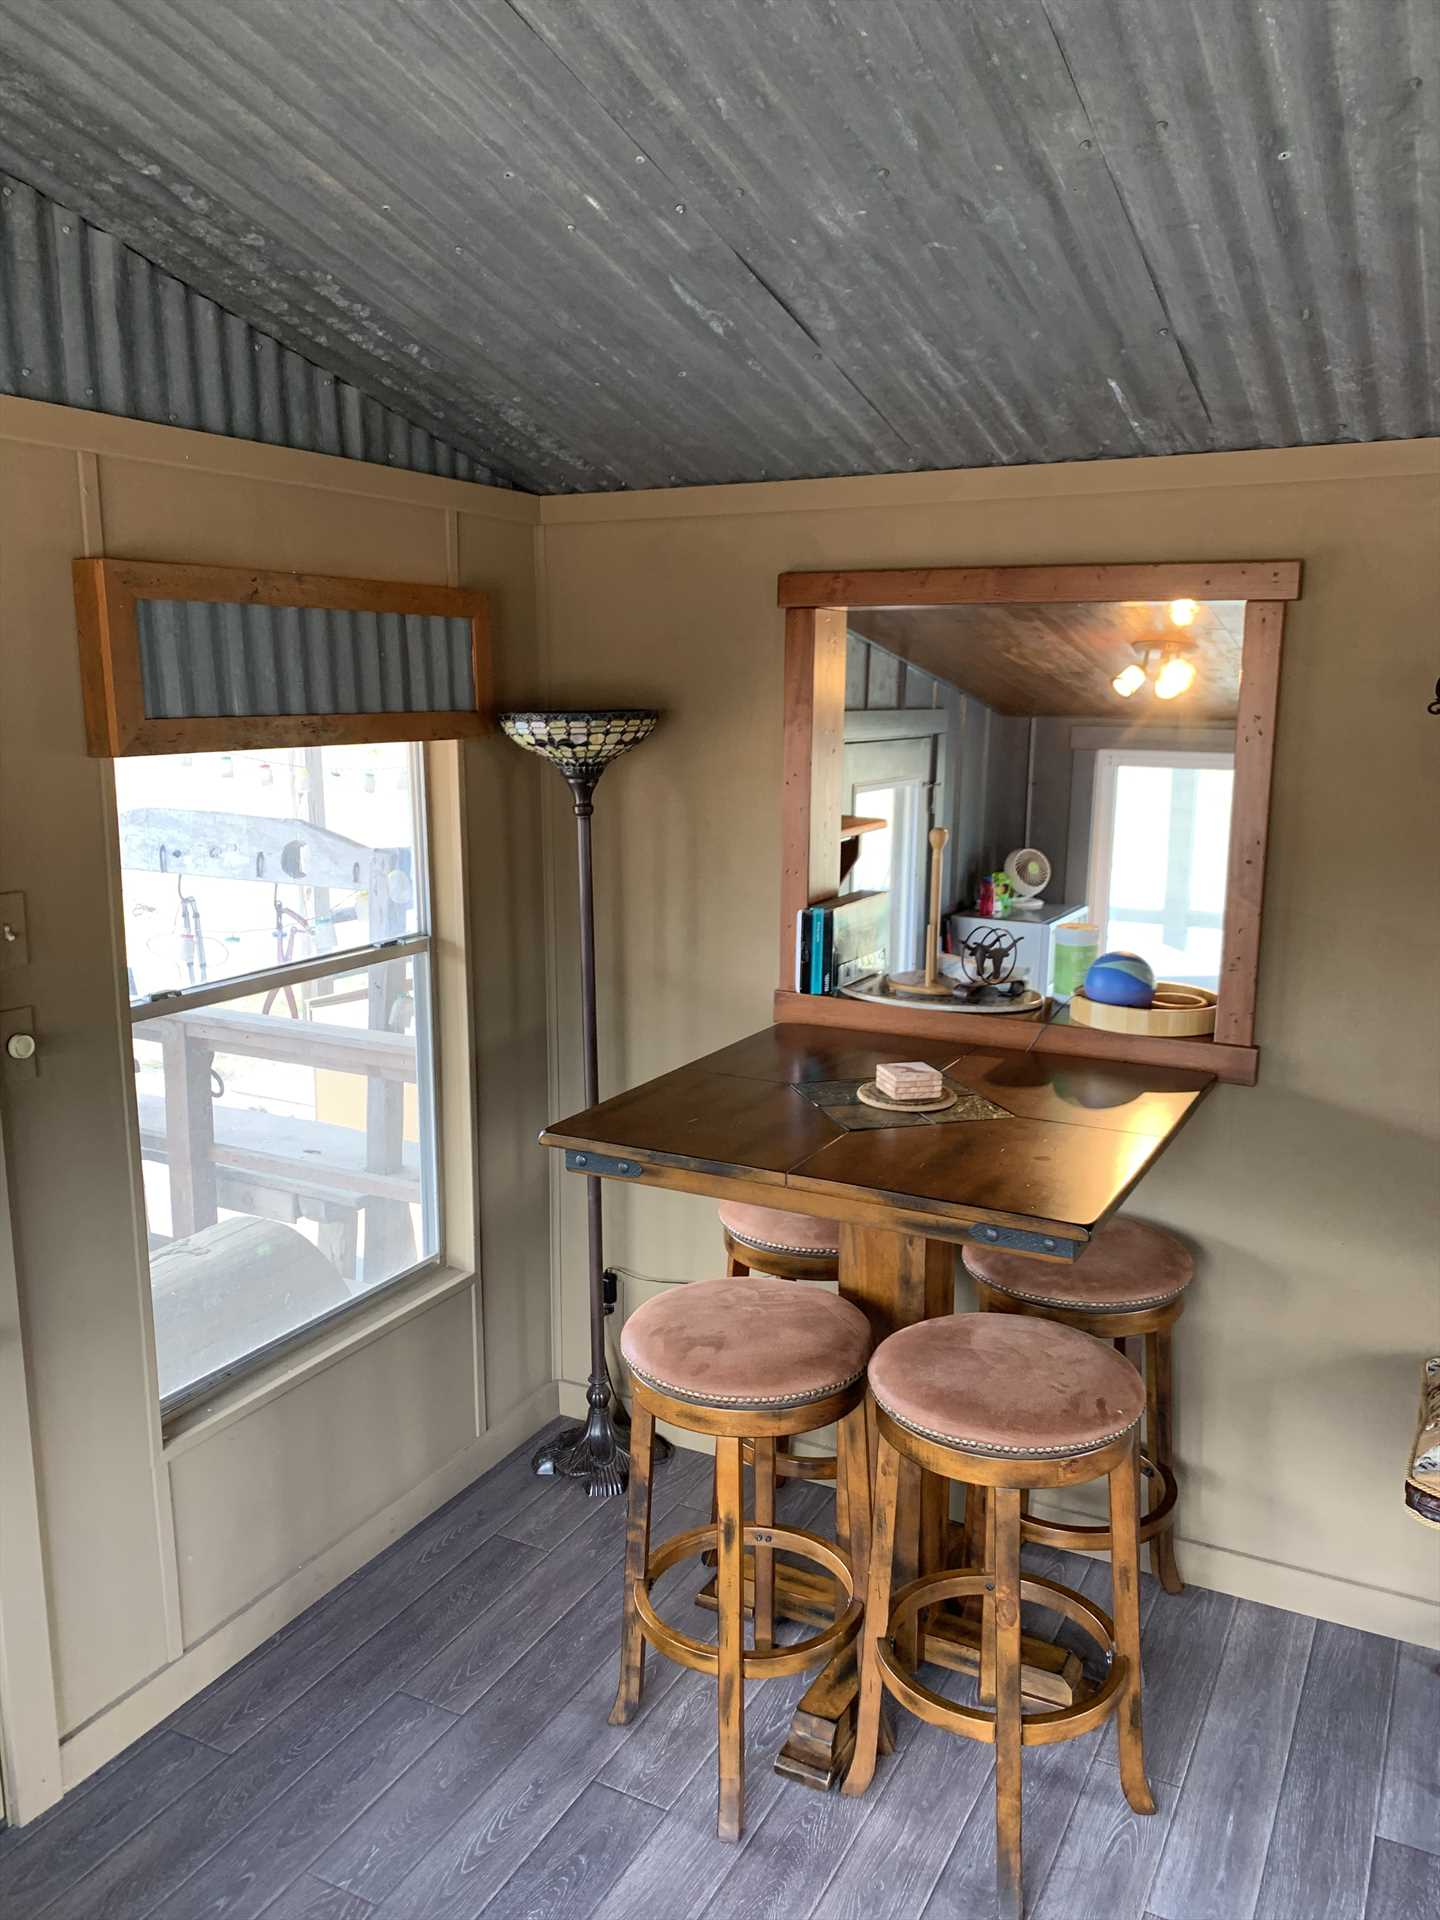 Need room for more than two guests? Ask us about other cabin rentals available at Tabasco Ranch!